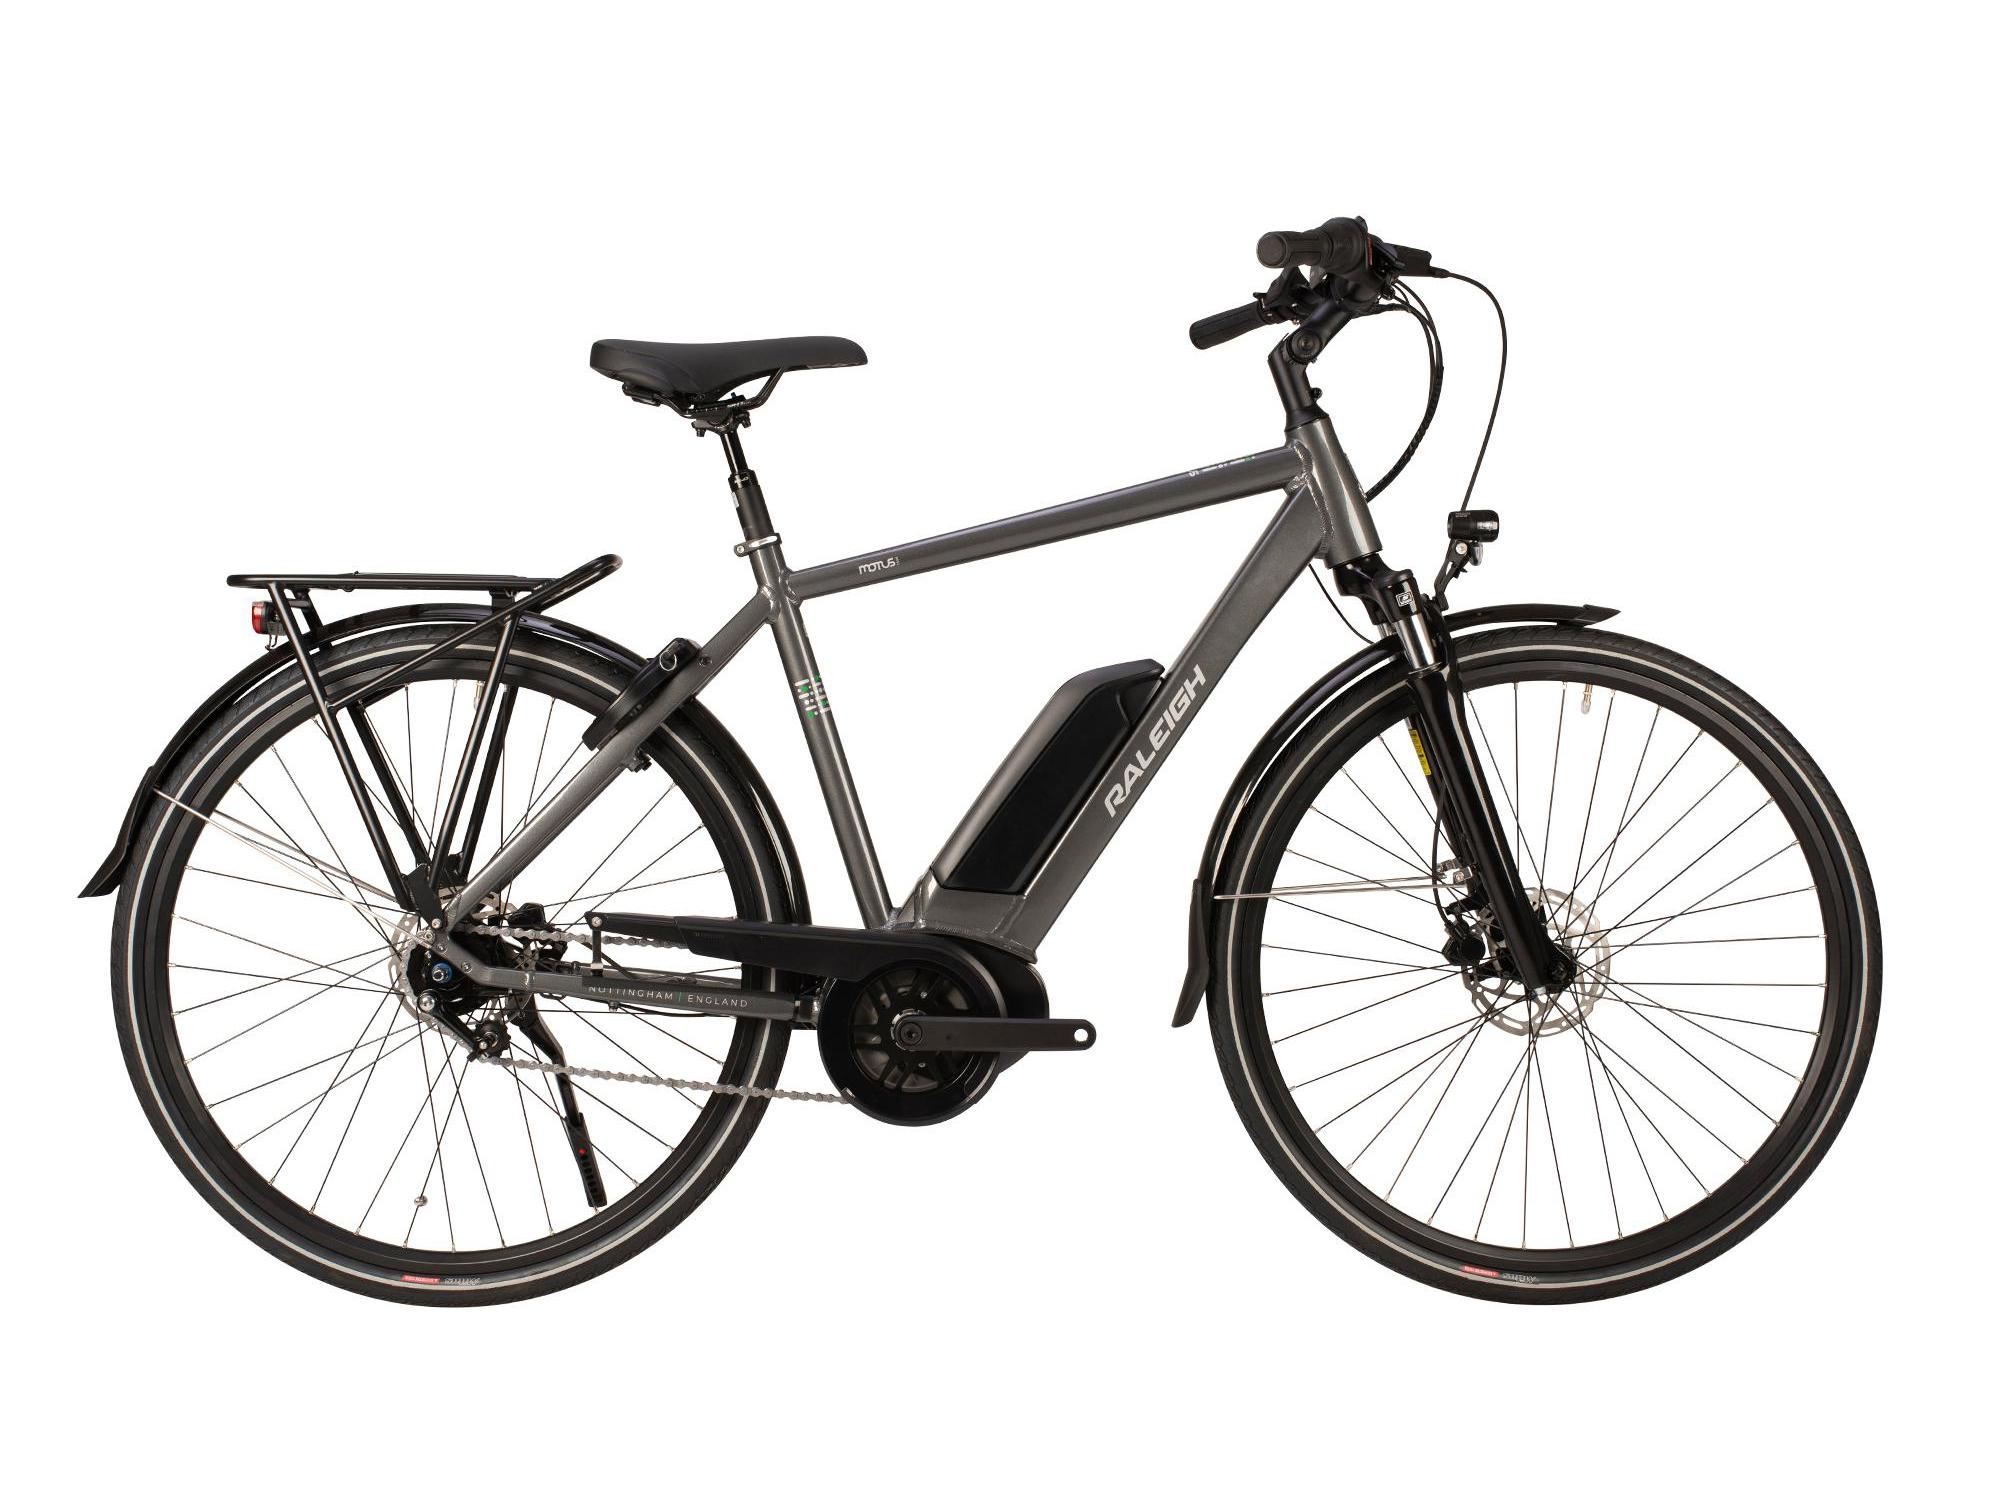 Raleigh Motus Tour electric bike